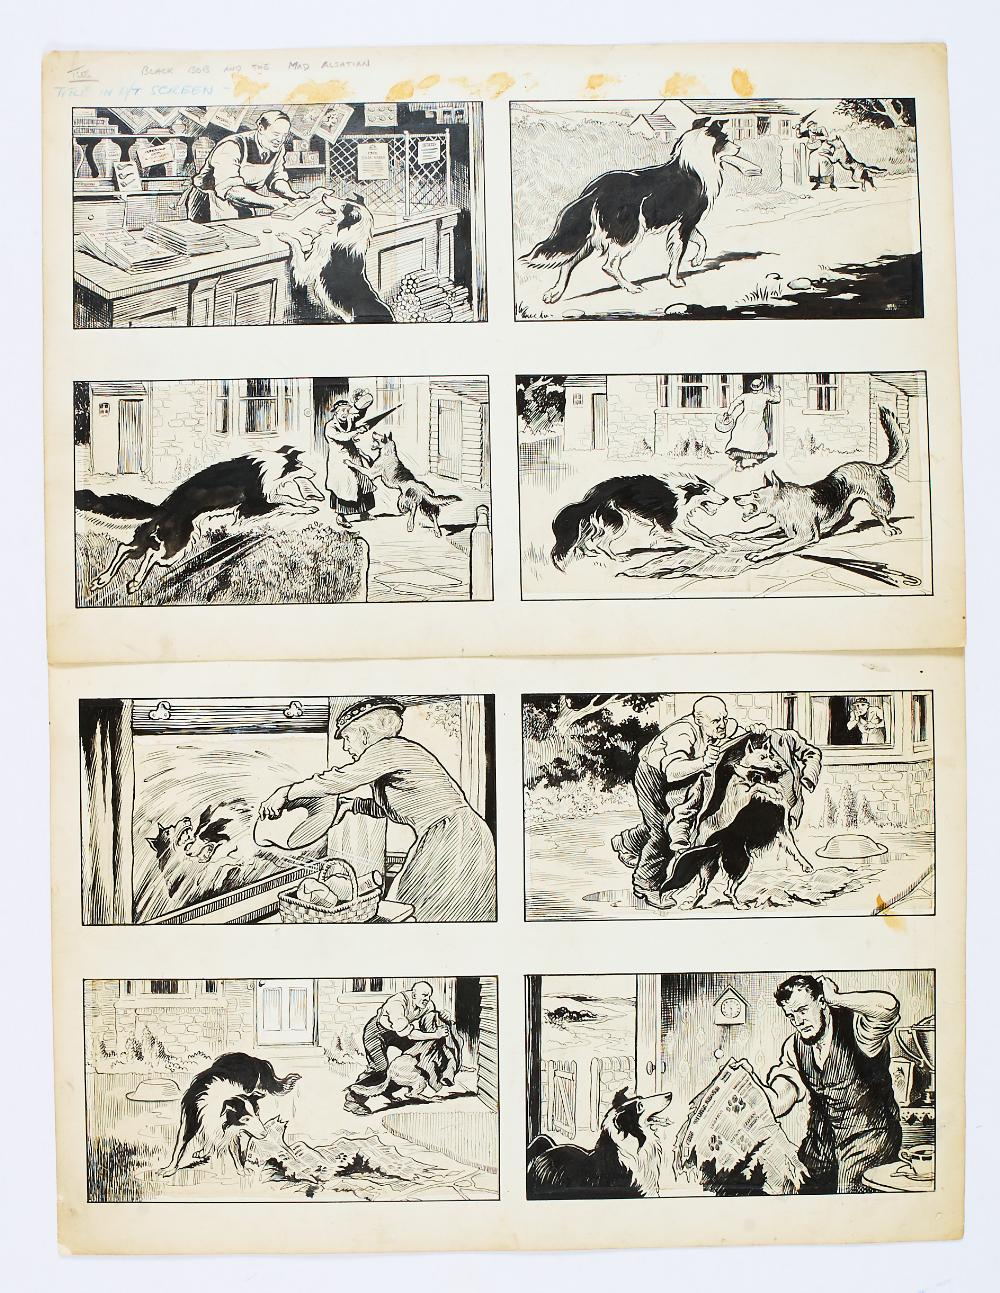 Lot 60 - Black Bob and the Mad Alsatian original 8 panel artworks by Jack Prout (1950s) for The Dandy/Black